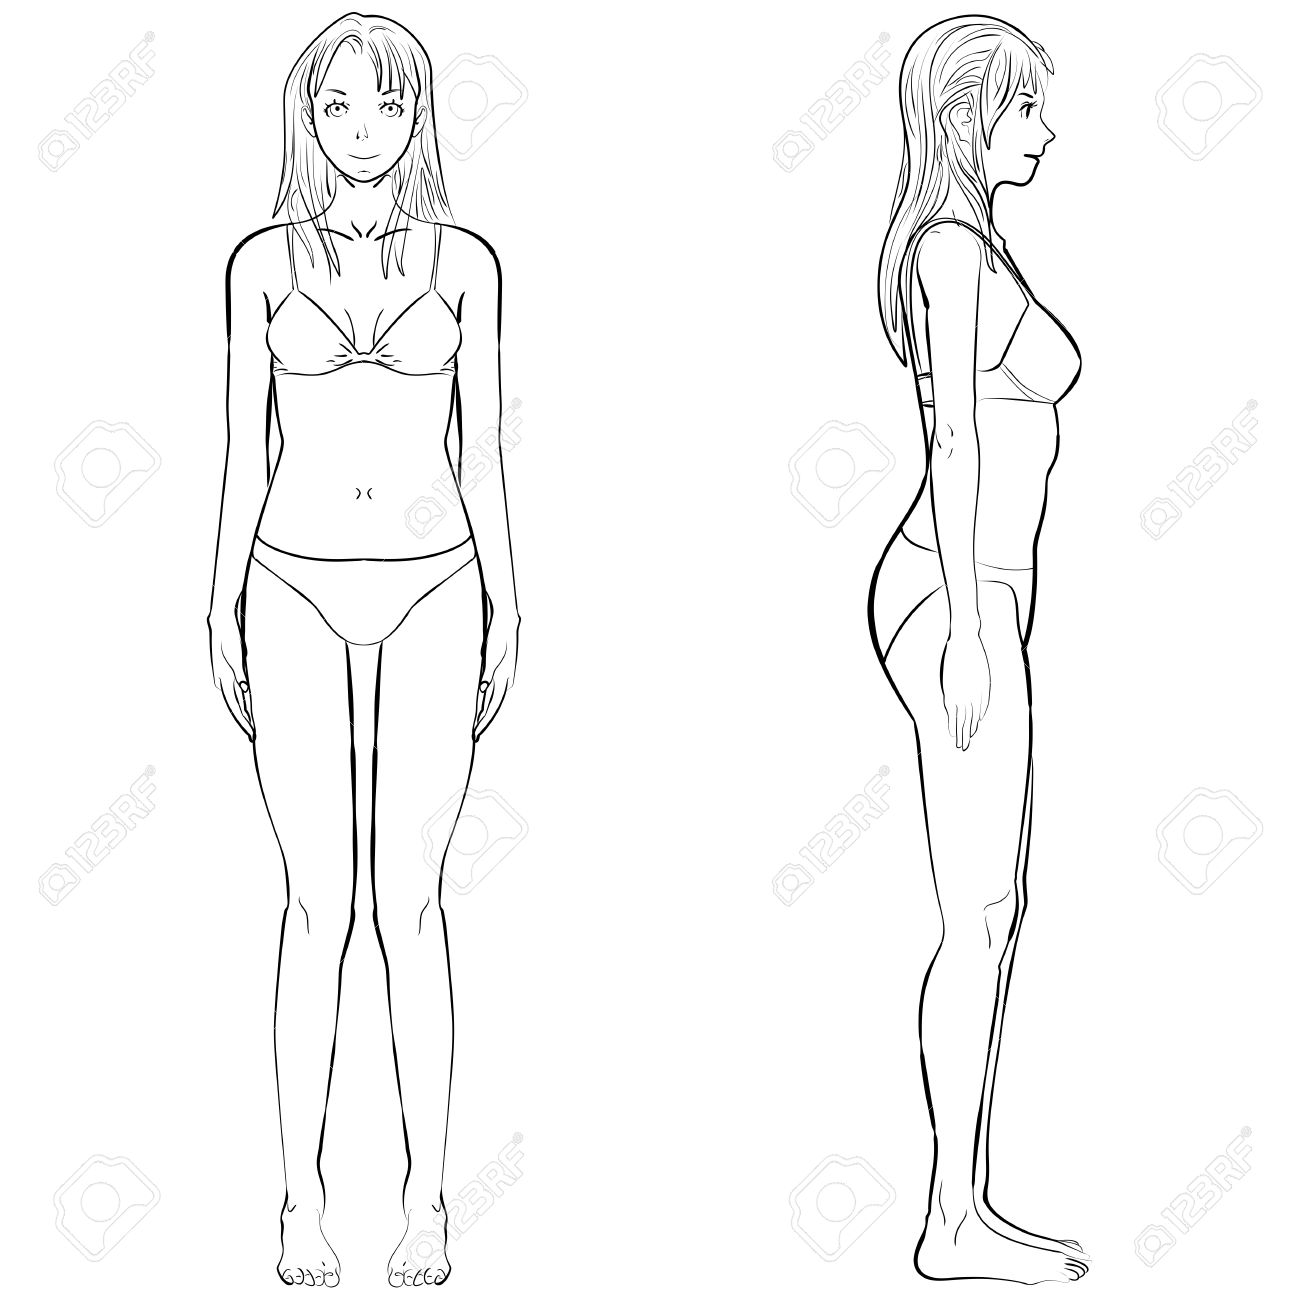 Sketch template girl illustration woman body front and side view in outline stock vector 68190207